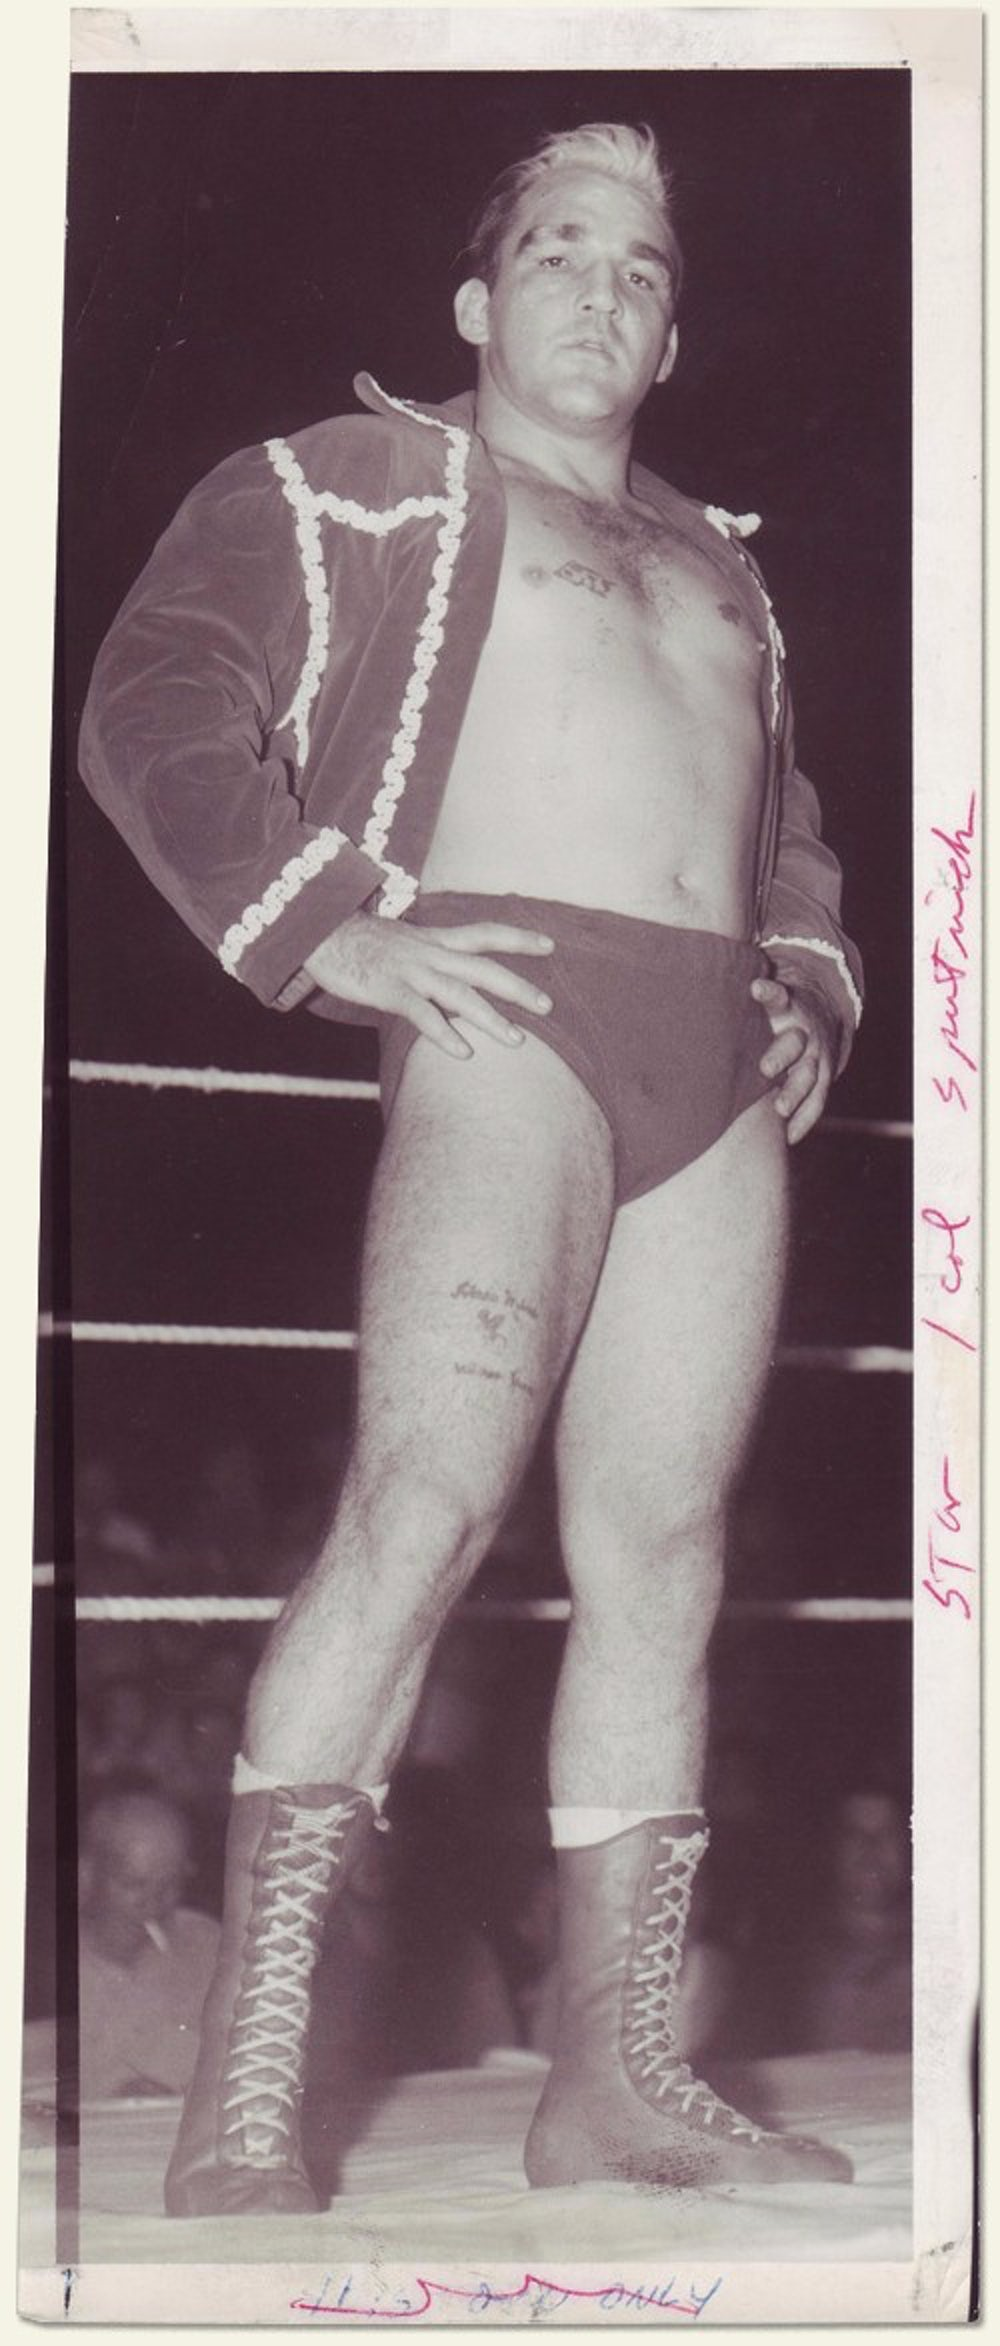 As Monroe aged, the punishment he received in the ring took a visible toll on his body, as seen in this photo from 1964 or 1965.